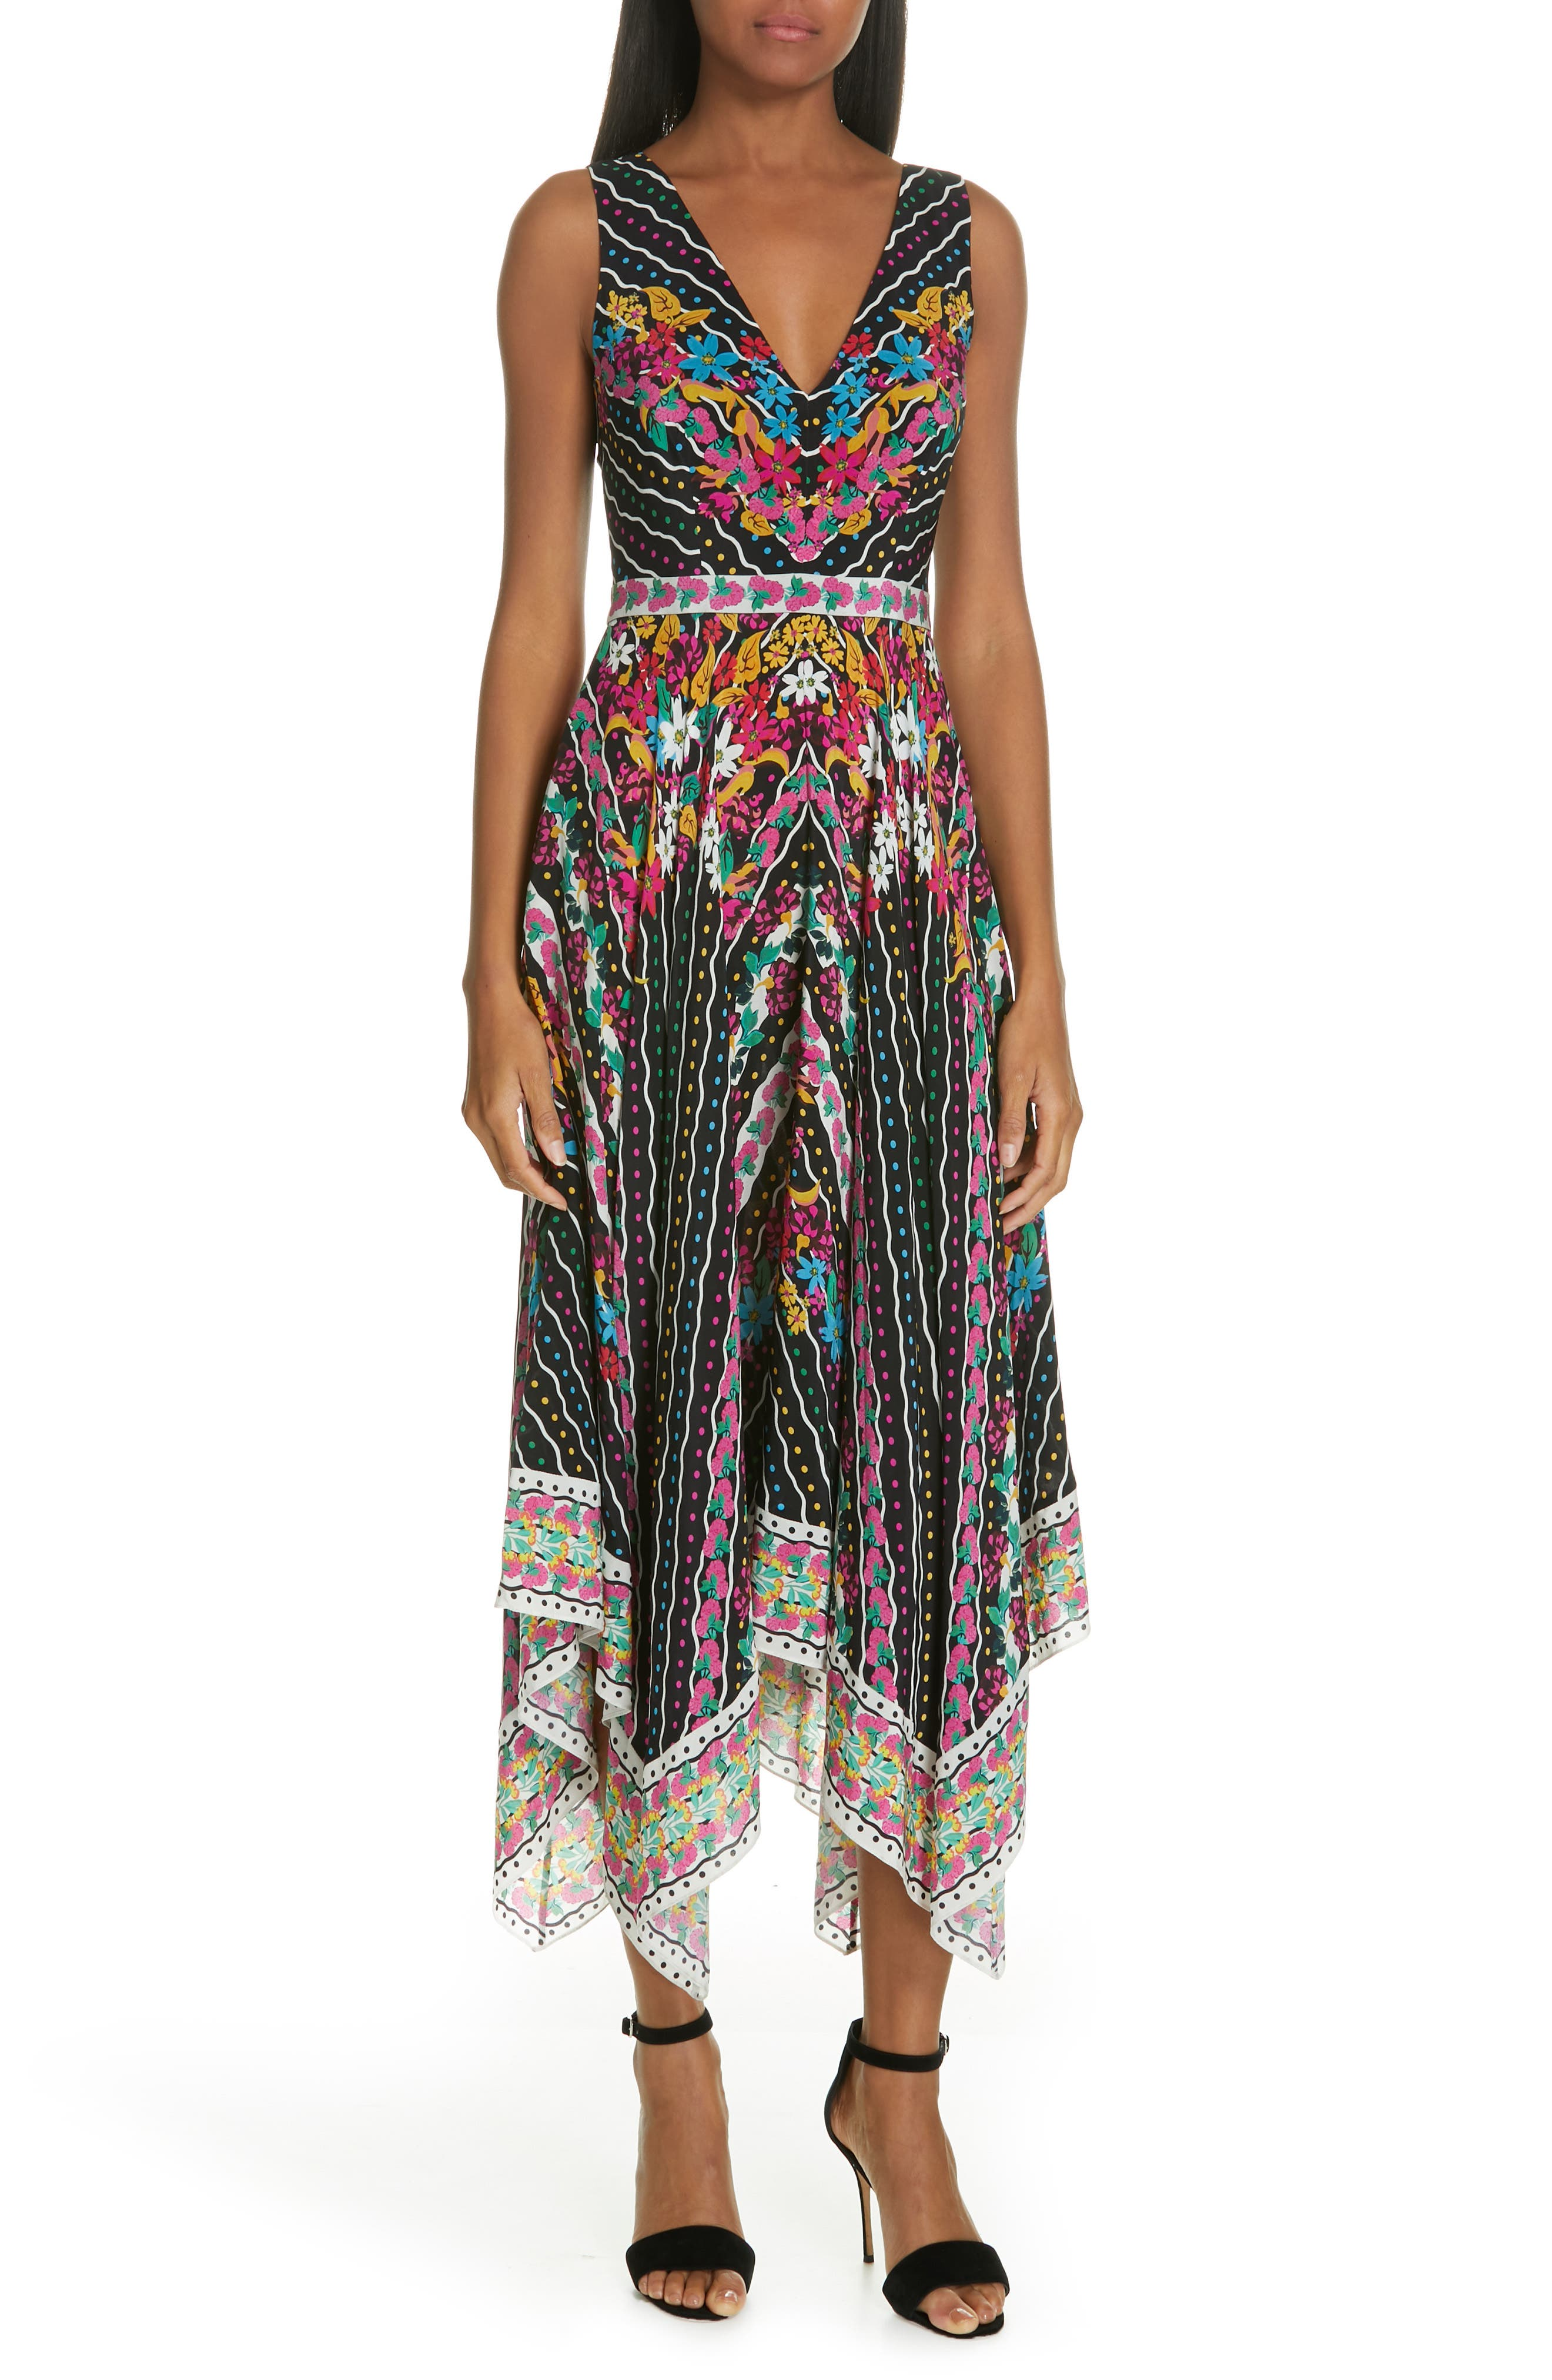 SALONI, Zuri Floral Print Dress, Main thumbnail 1, color, 001